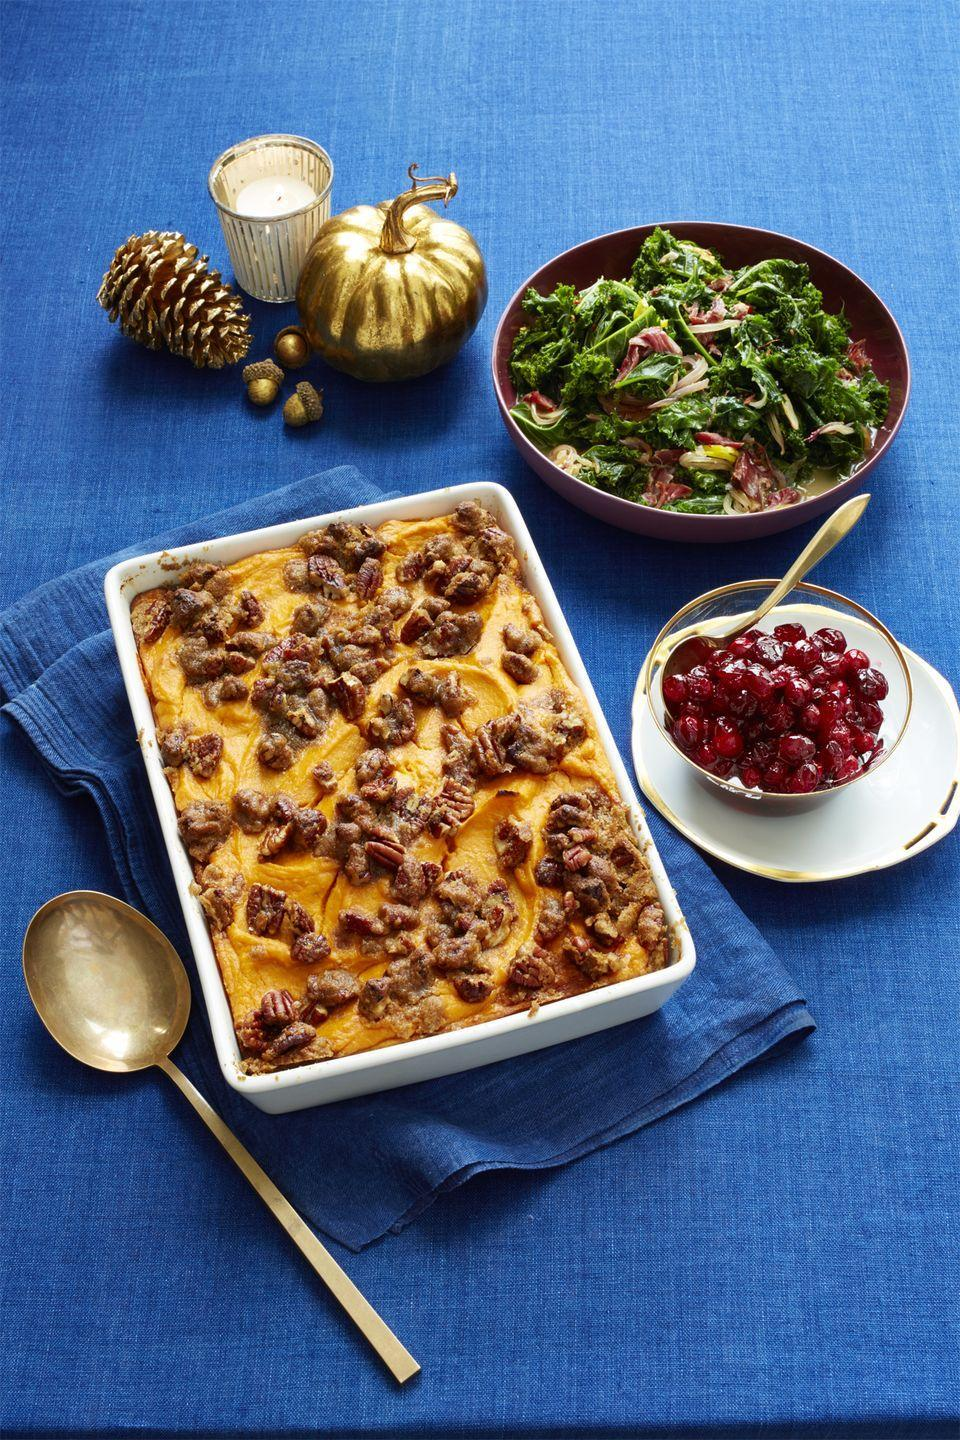 """<p>A staple on every Thanksgiving table, this sweet casserole is such a treat you could even save it for the end of the meal.<br></p><p><a href=""""https://www.womansday.com/food-recipes/food-drinks/recipes/a56472/sweet-potato-casserole-with-brown-sugared-pecans-recipe/"""" rel=""""nofollow noopener"""" target=""""_blank"""" data-ylk=""""slk:Get the Sweet Potato Casserole with Brown-Sugared Pecans recipe."""" class=""""link rapid-noclick-resp""""><em><strong>Get the Sweet Potato Casserole with Brown-Sugared Pecans recipe.</strong></em></a> </p>"""